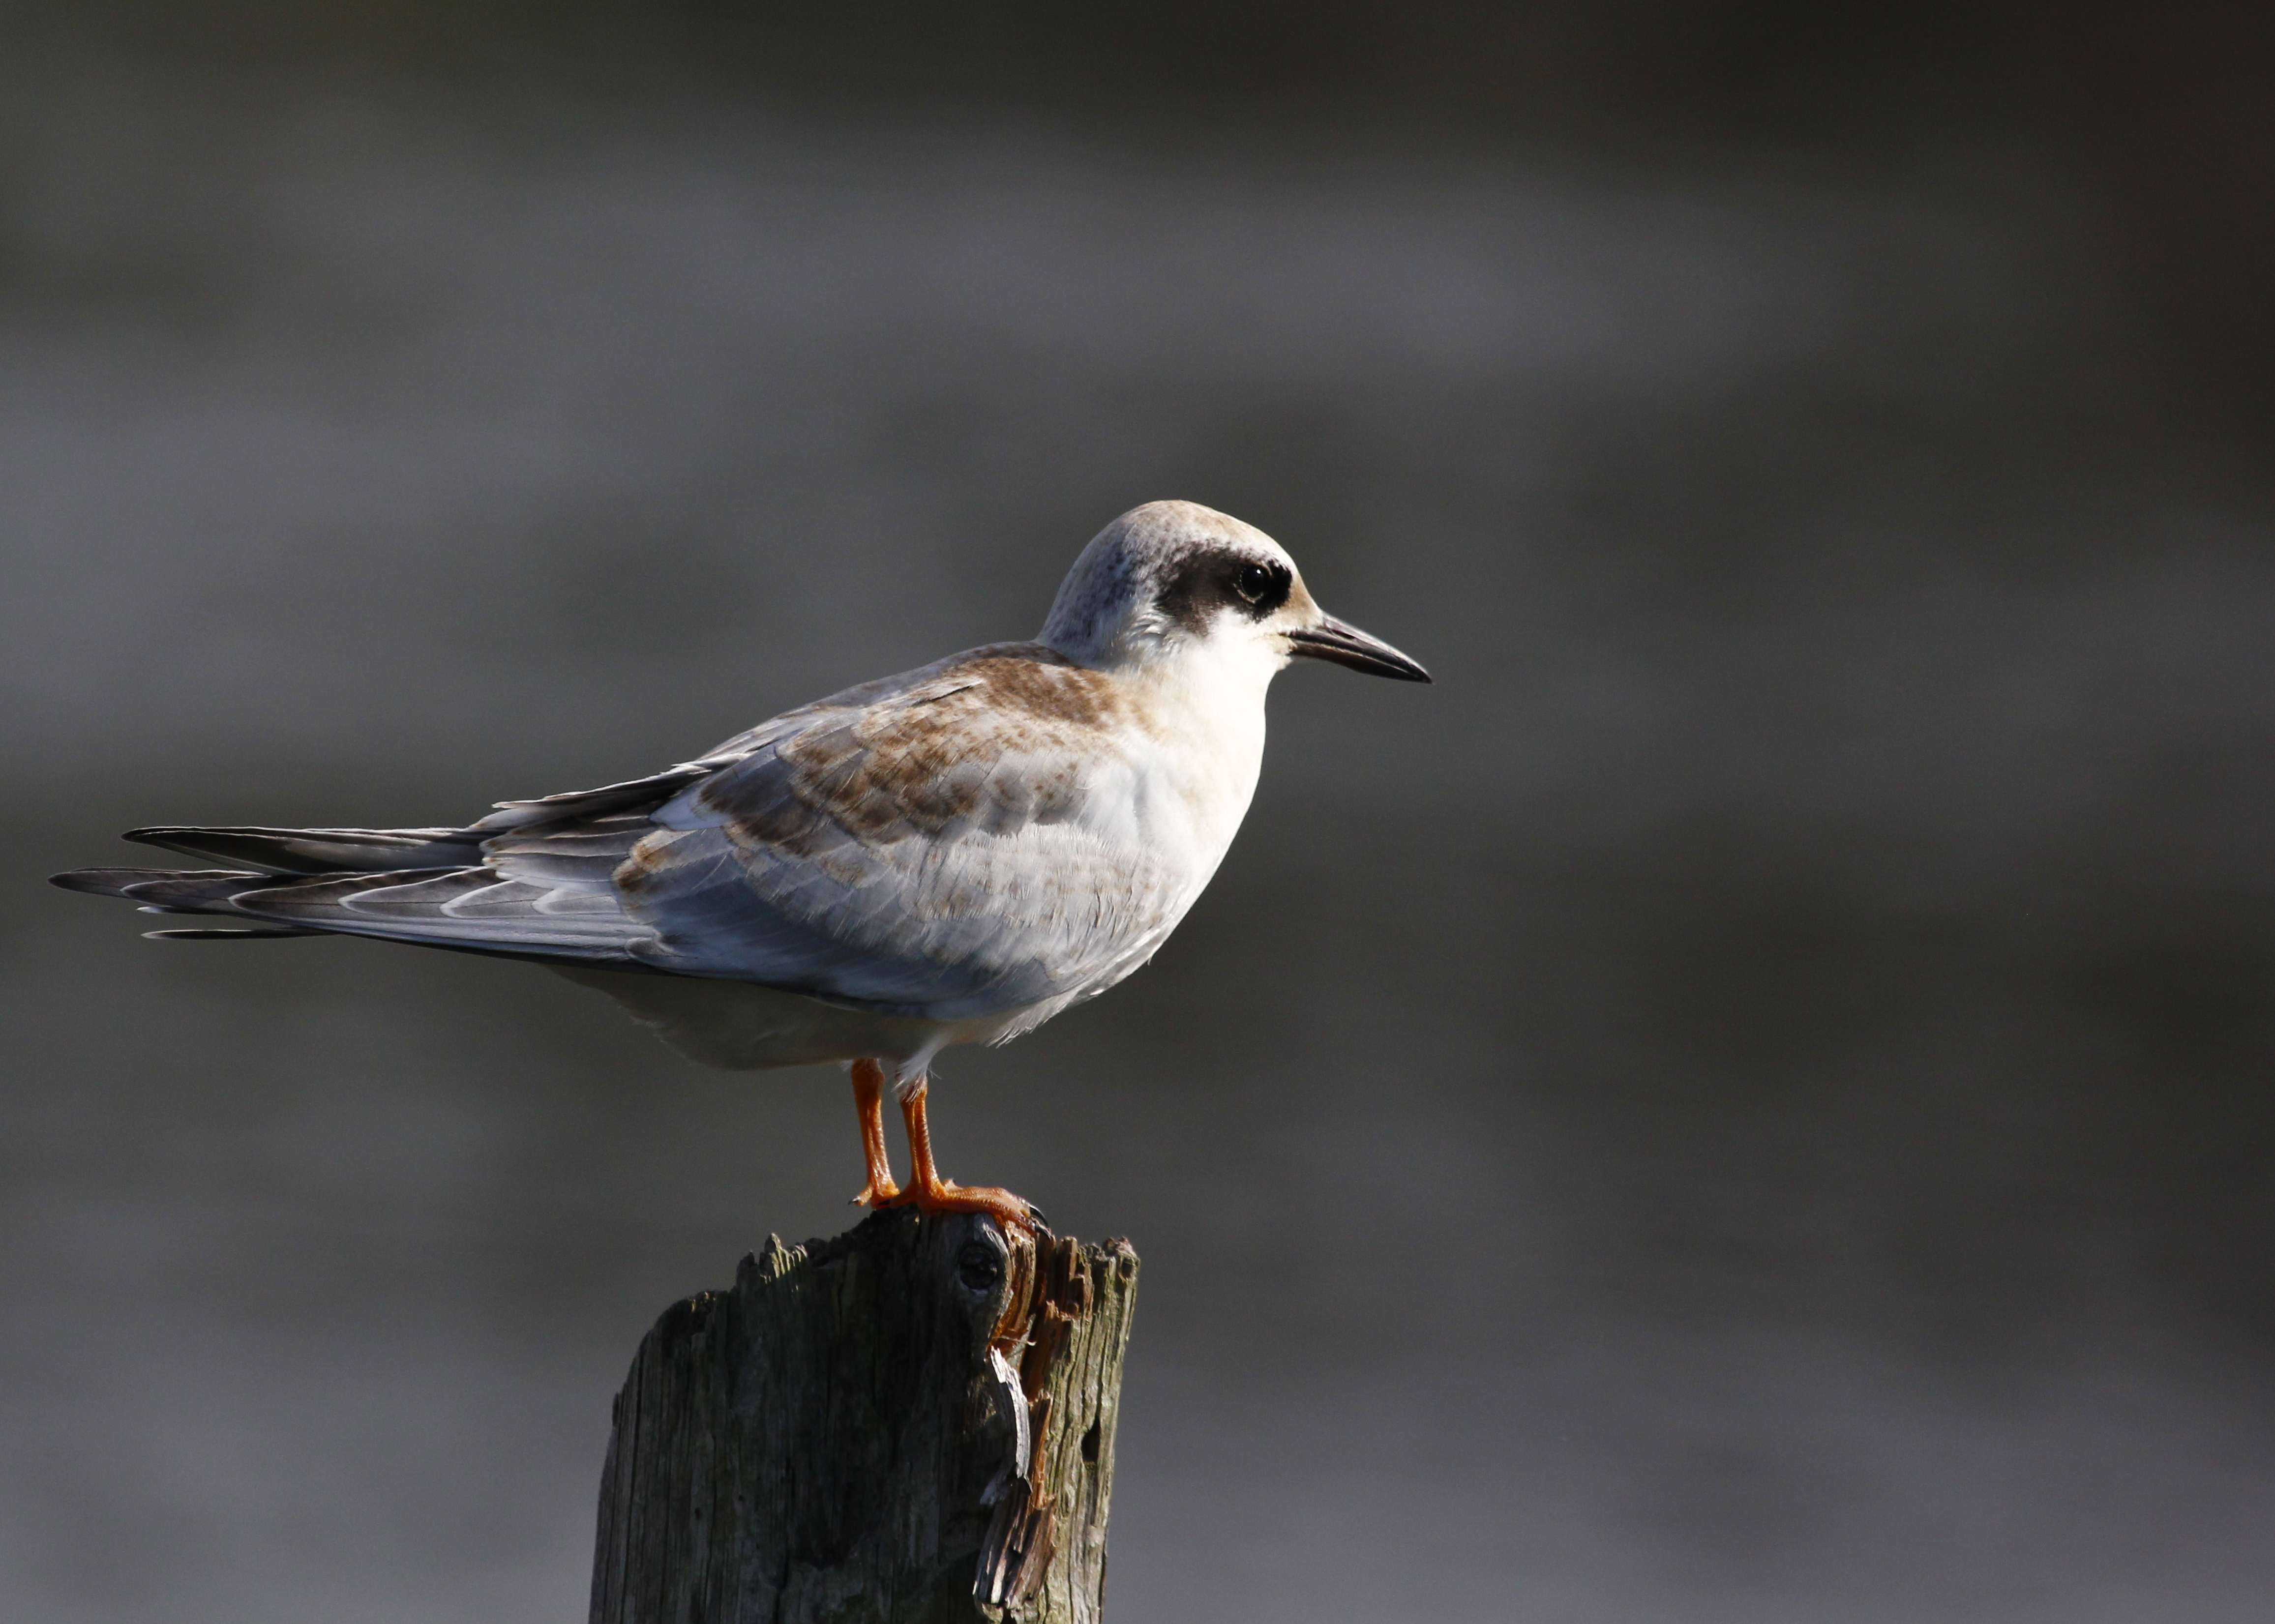 I have this as a juvenile Forster's Tern. Oakdale NY 8/3/13.